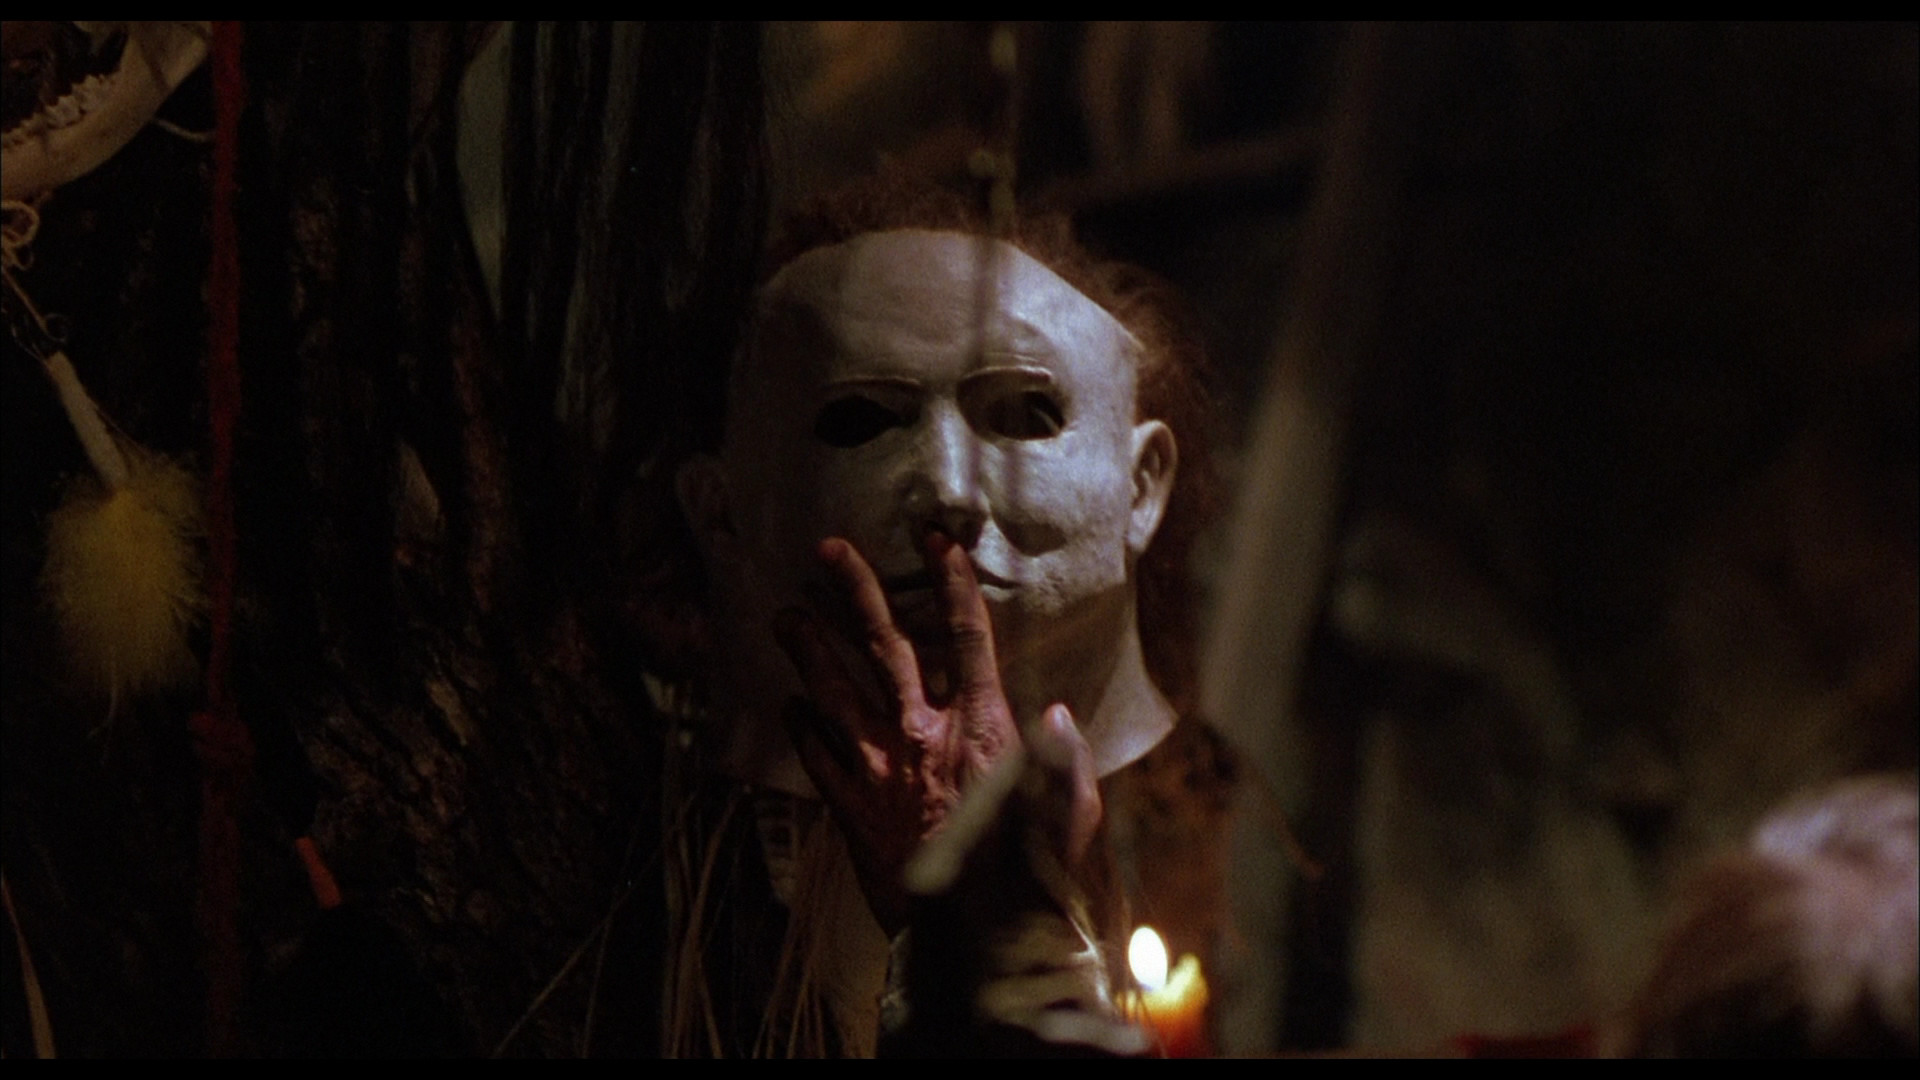 Halloween 5 : The Revenge of Michael Myers images Halloween 5 HD wallpaper  and background photos